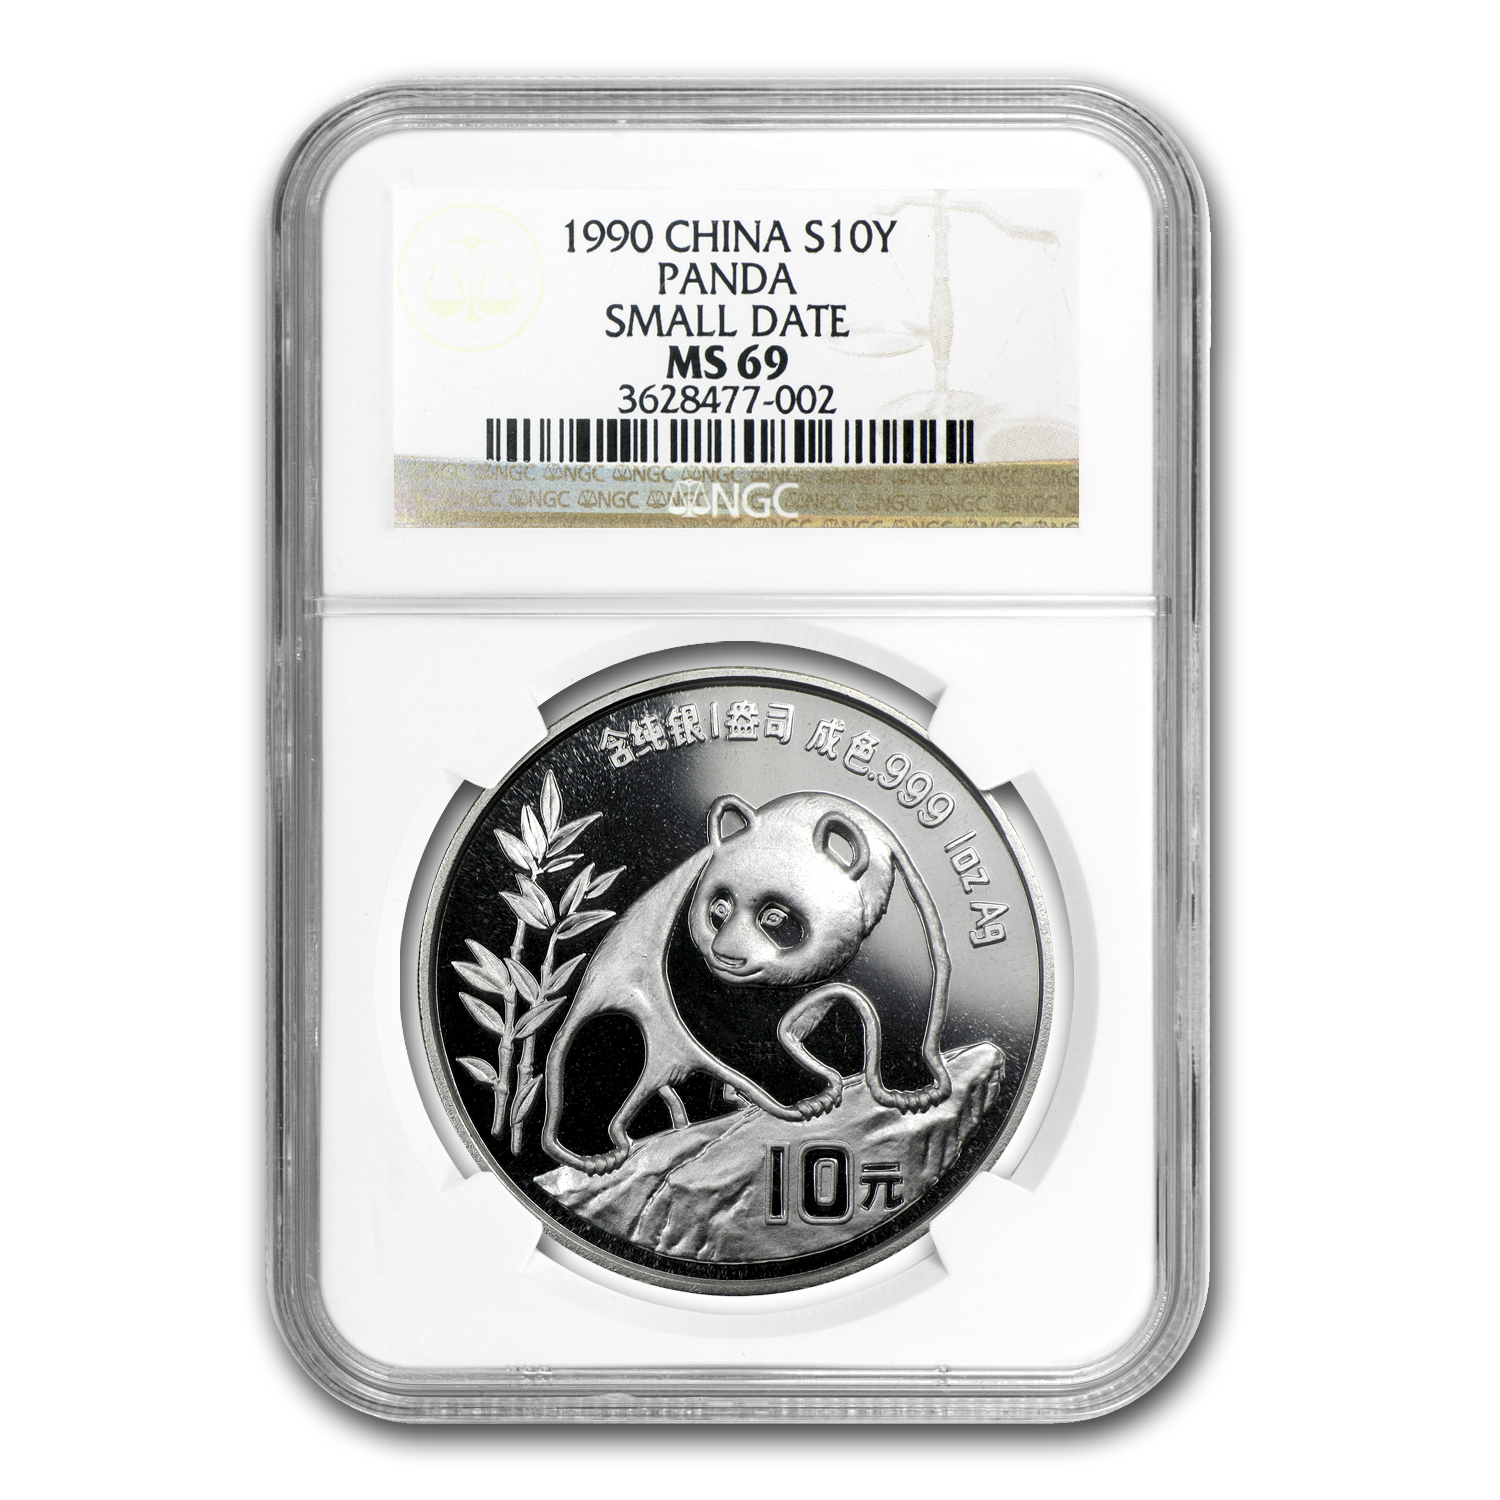 1990 1 oz Silver Chinese Panda MS-69 NGC (Small Date)